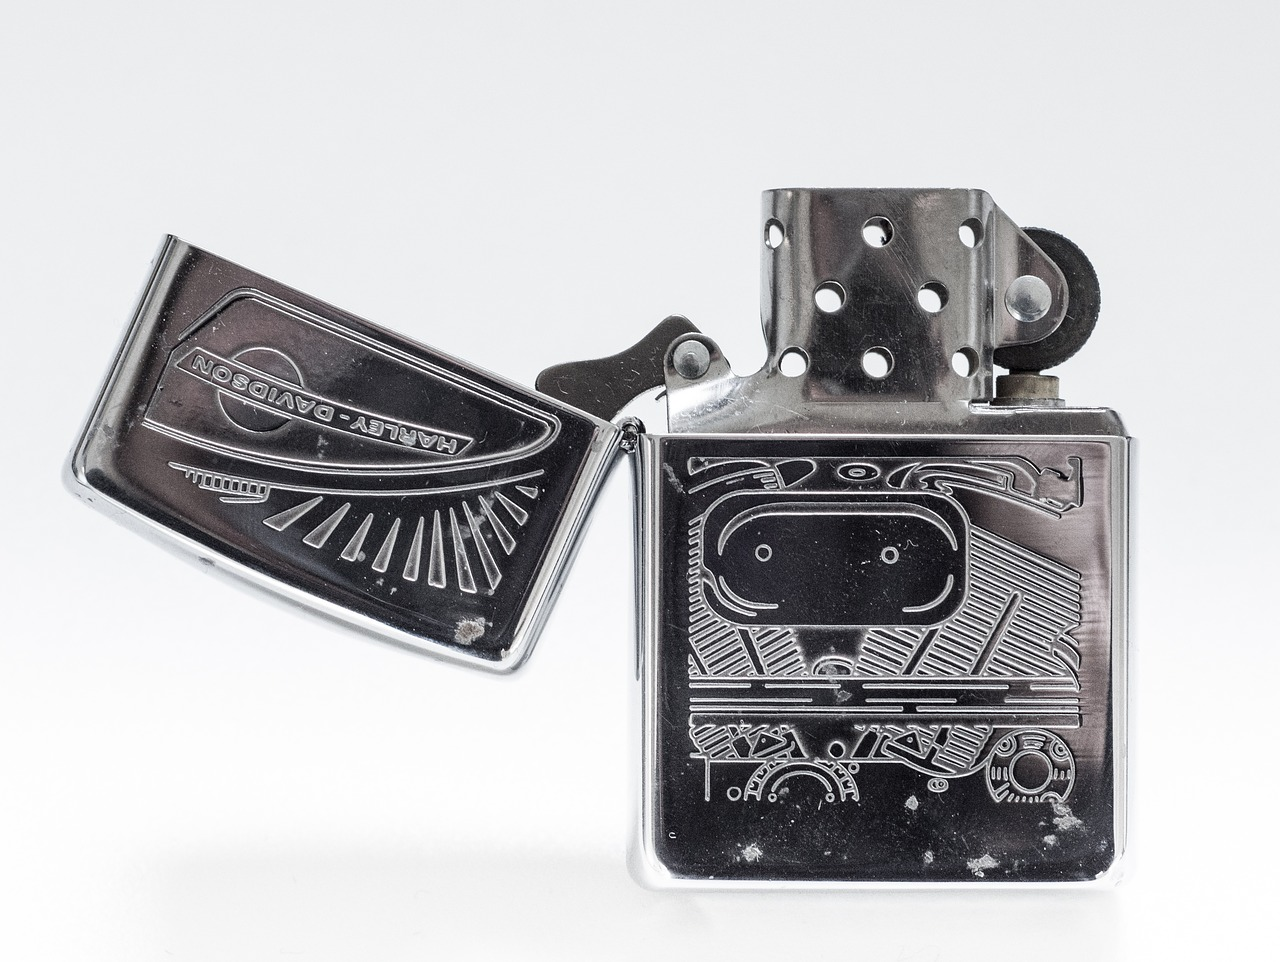 zippo,lighter,fire,flame,fuel,tobacco,harley davidson,metal,steel,vintage,cigar,cigarette,shiny,zippo lighter,free pictures, free photos, free images, royalty free, free illustrations, public domain